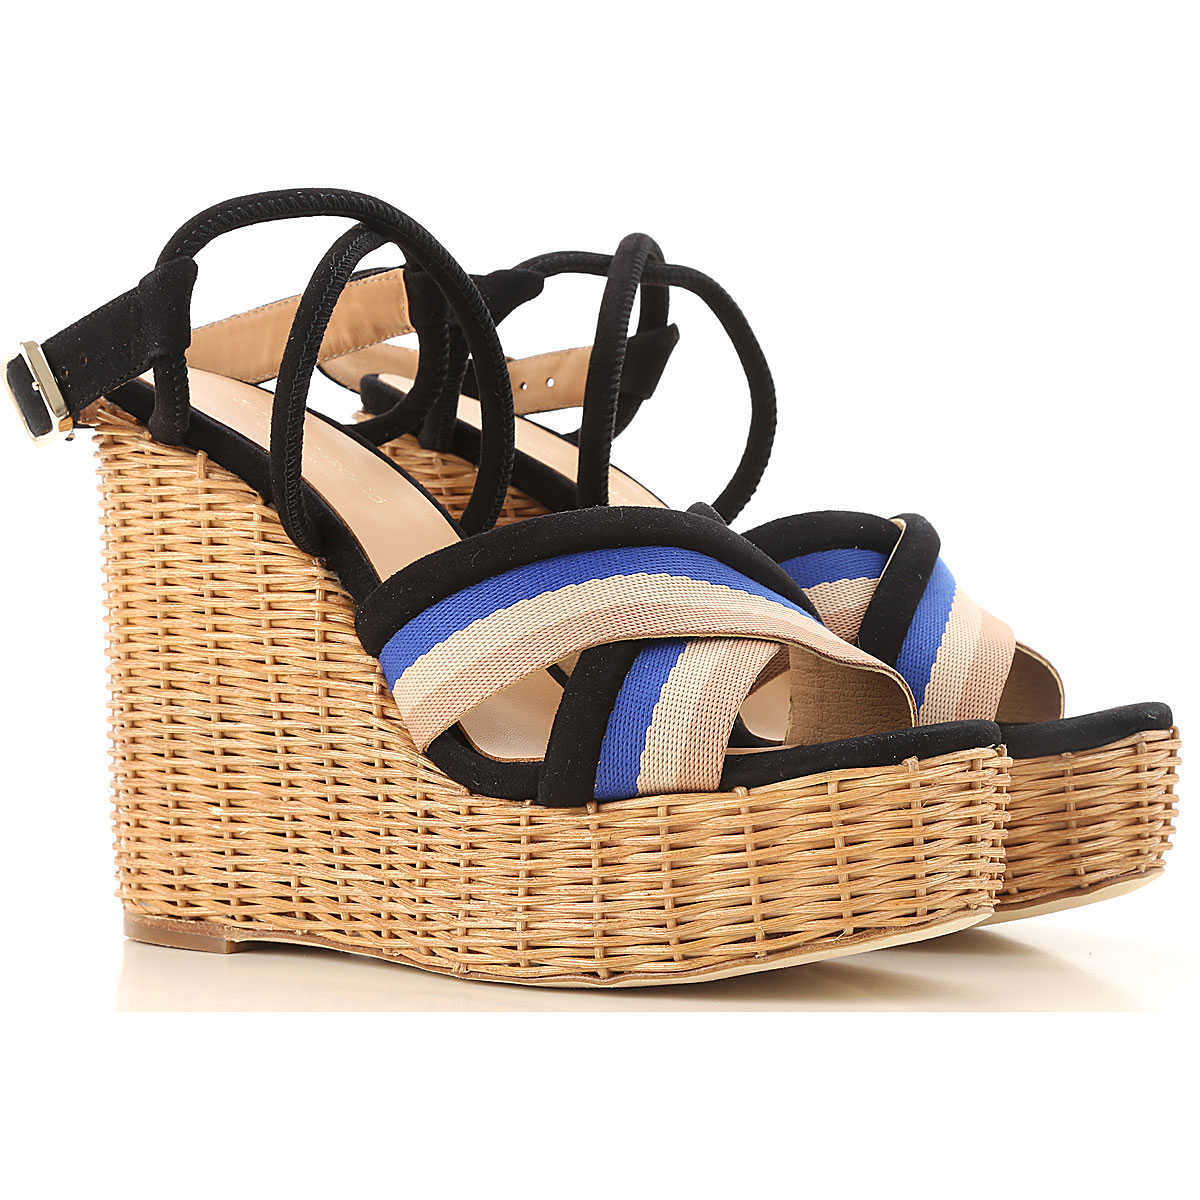 Paloma Barcelo Wedges for Women Black Canada - GOOFASH - Womens HOUSE SHOES